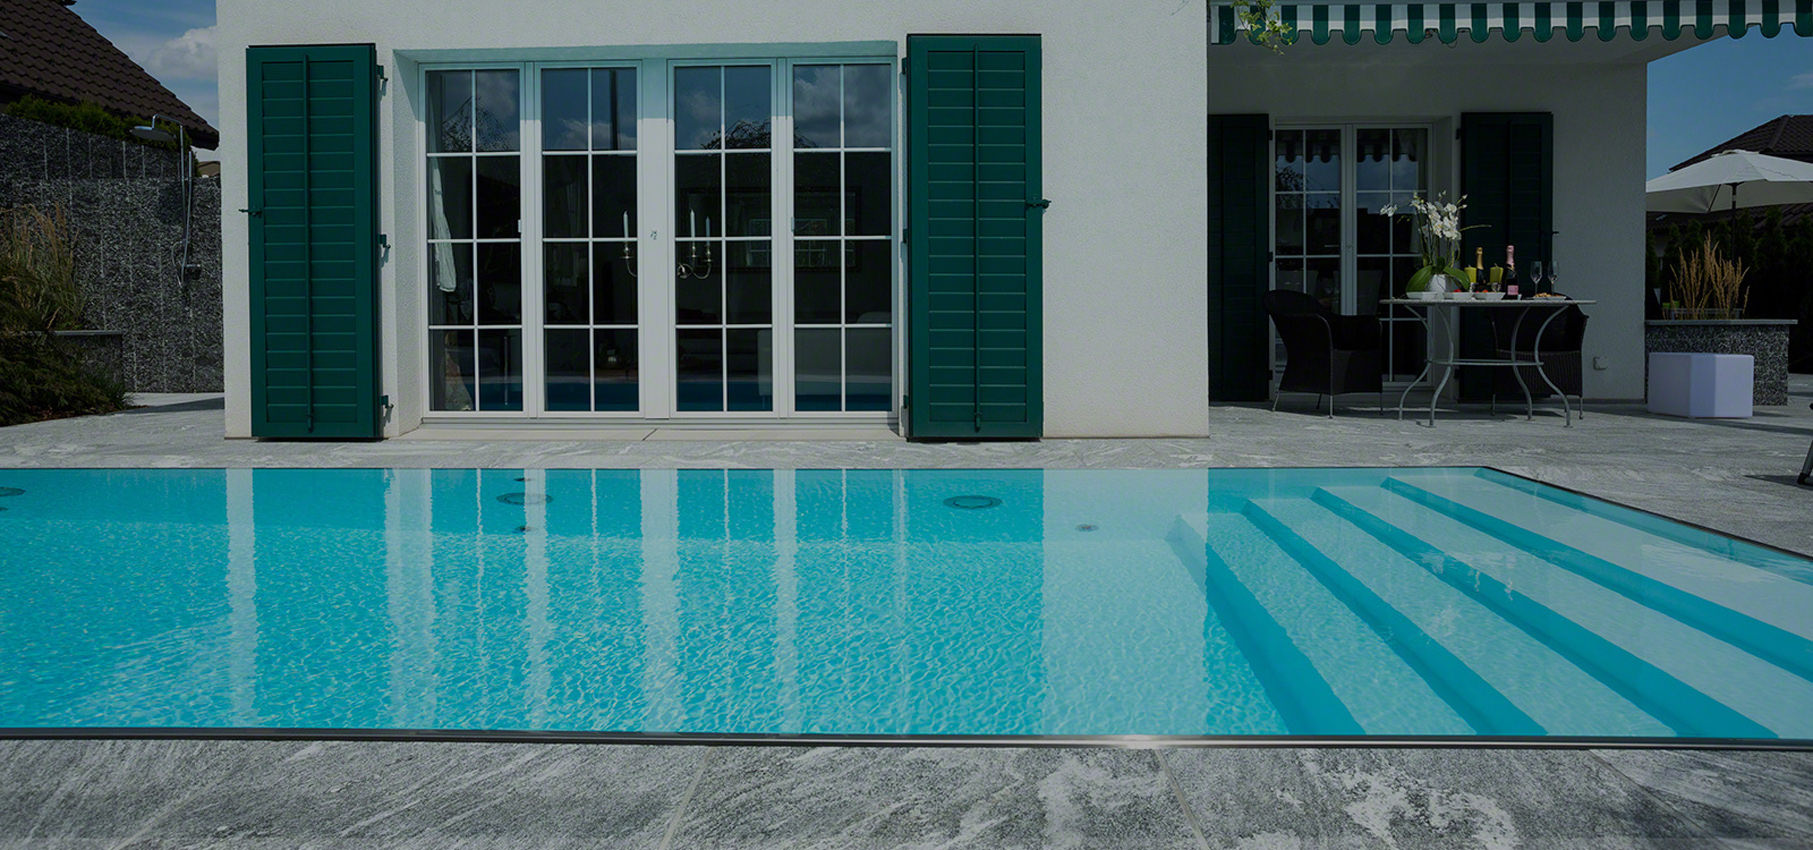 Piscine miroir d bordement designo pool en suisse romande for Installation piscine miroir